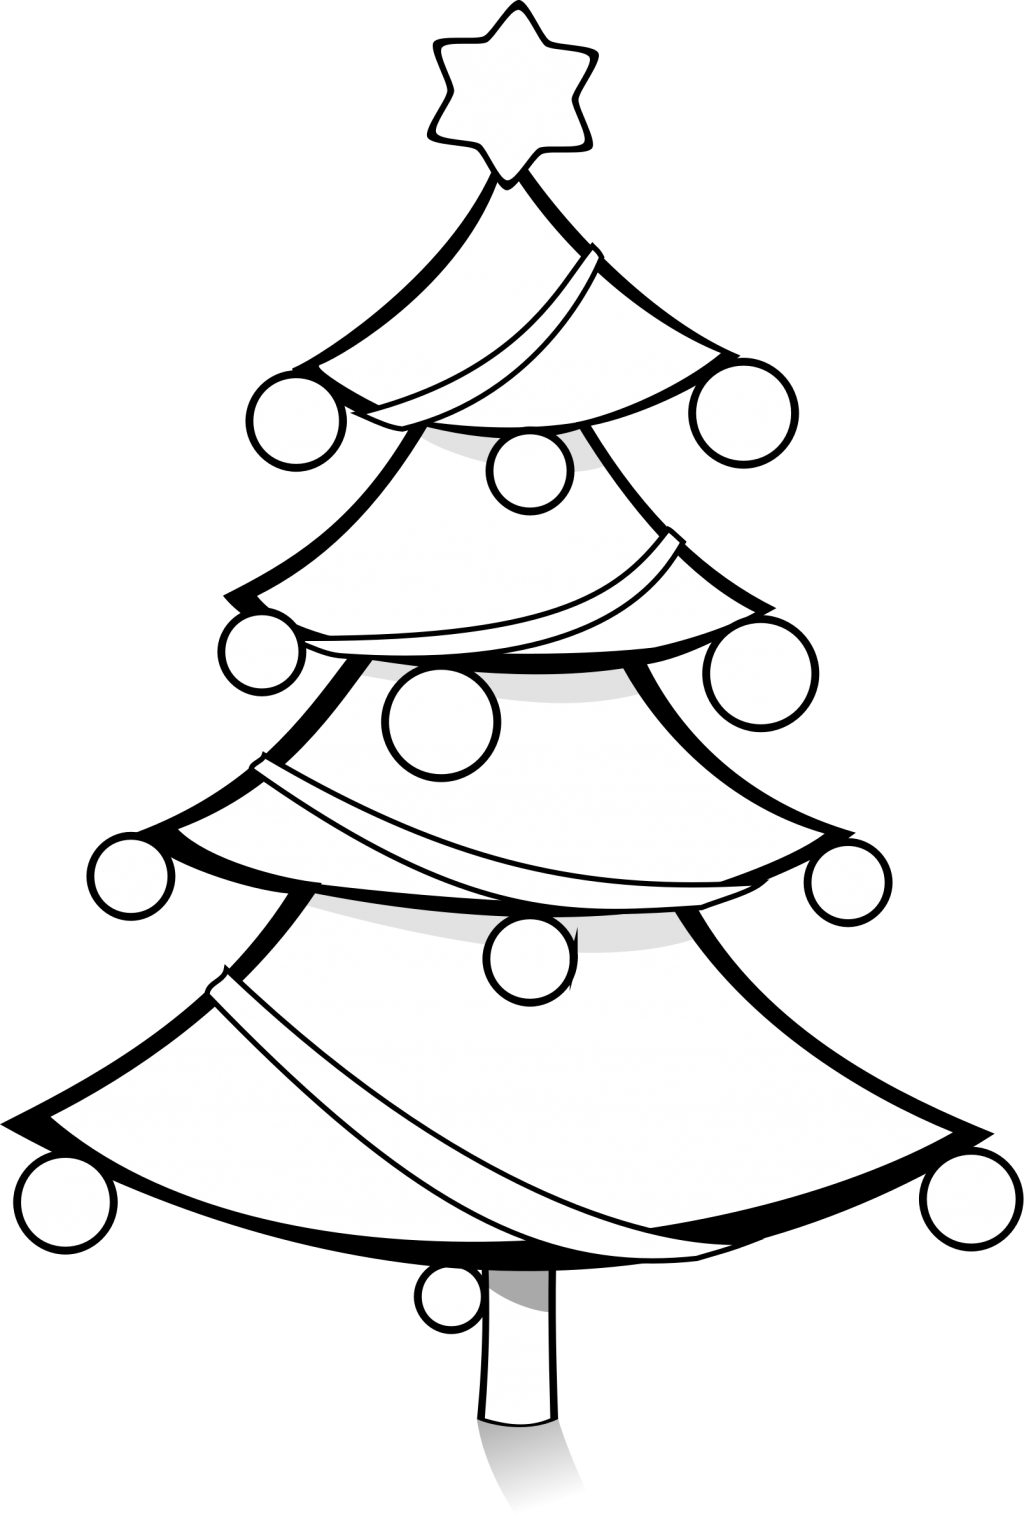 Tree black and white clipart clip art free baby nursery ~ Picturesque Black And White Christmas Tree Clipart ... clip art free